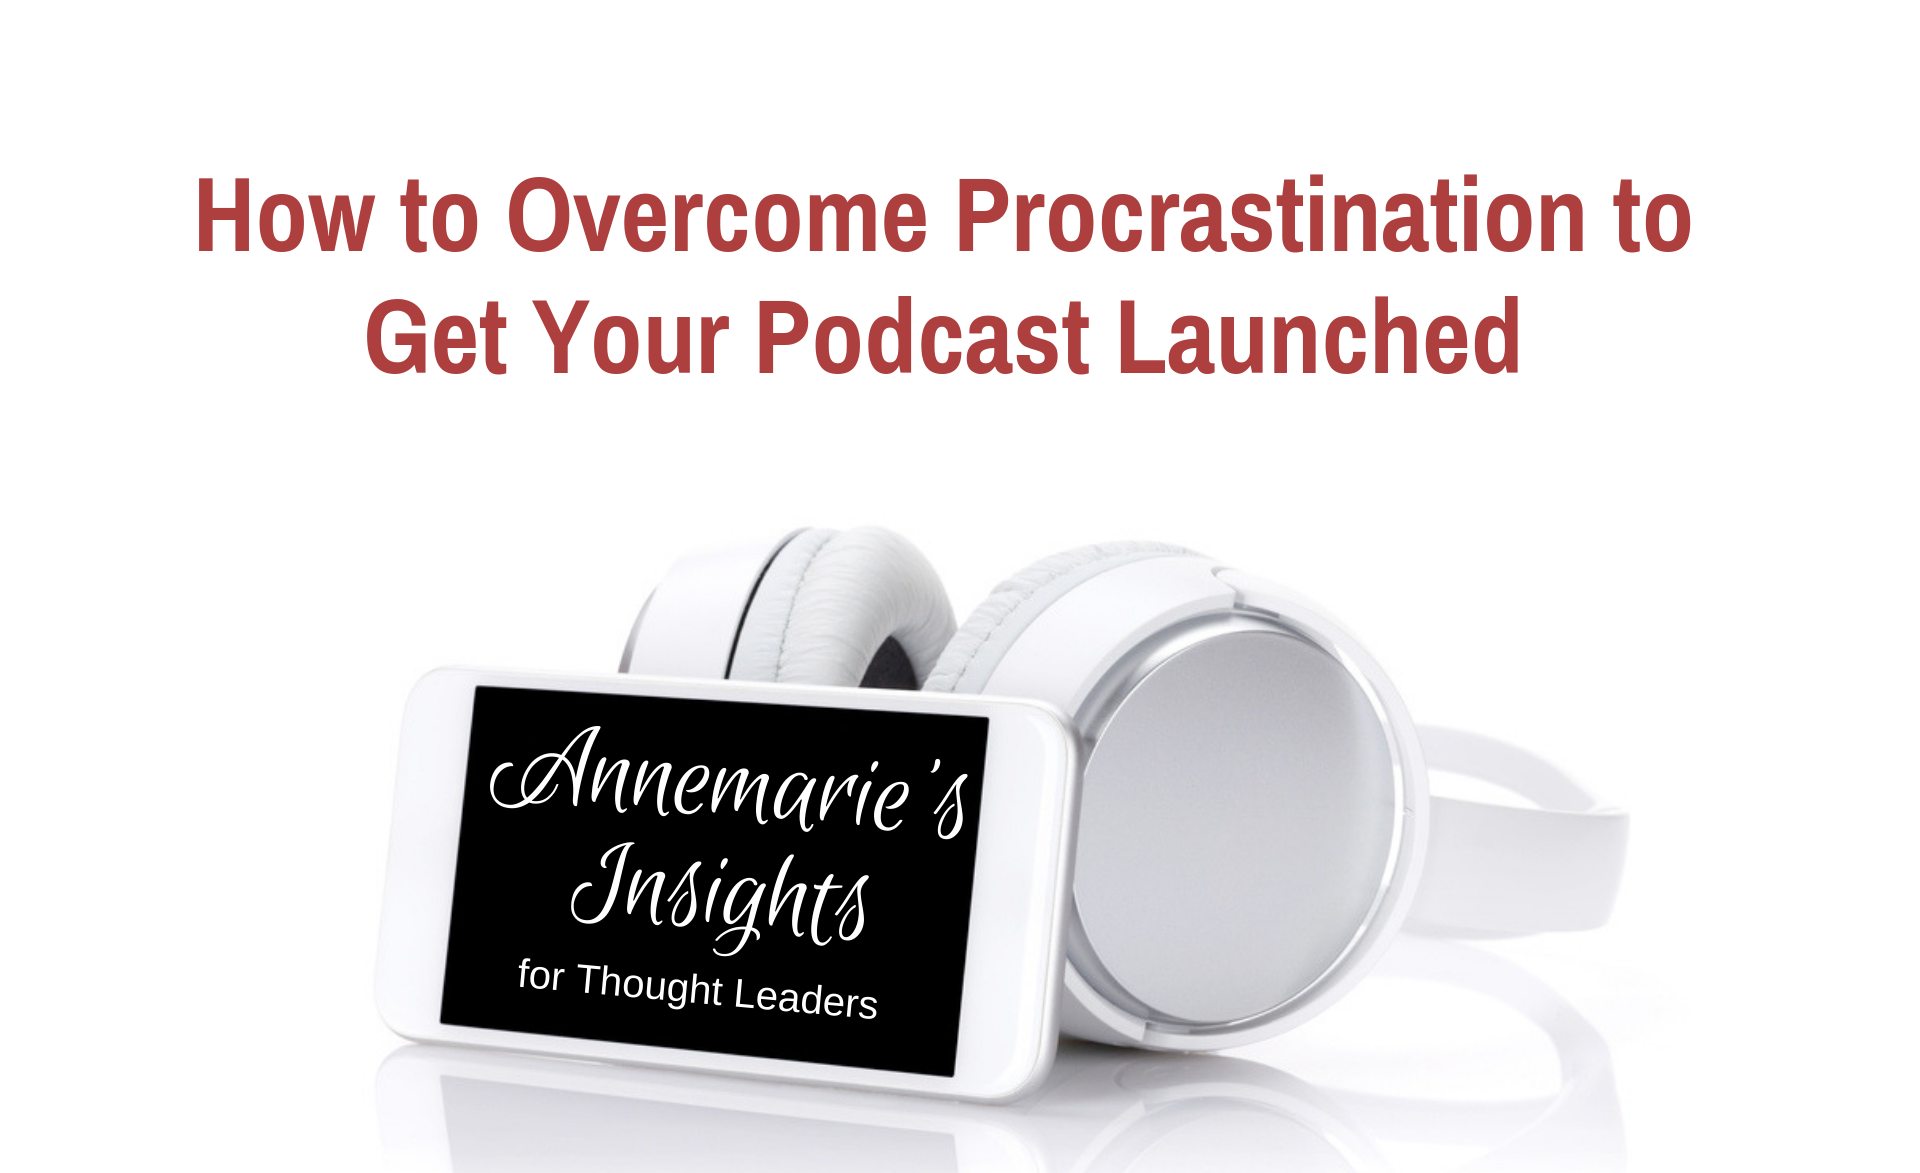 How to Overcome Procrastination to Get Your Podcast Launched